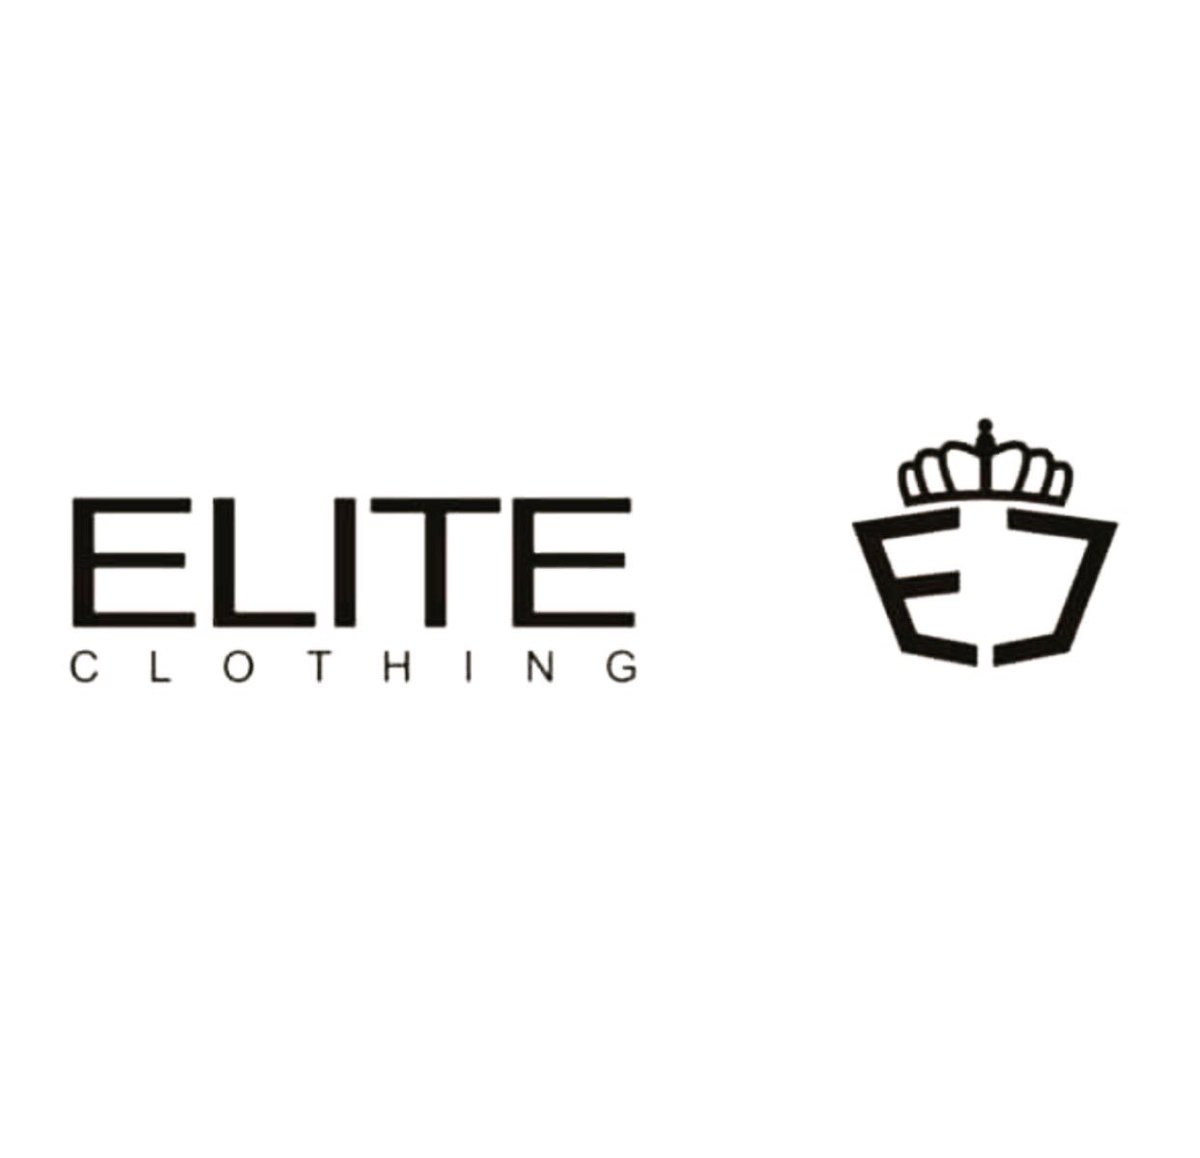 Fast approaching the Elite Clothing product release - discount code incoming  #EC #EliteClothing #menswear #mensstyle #mensfashion<br>http://pic.twitter.com/WmcpsHEteF